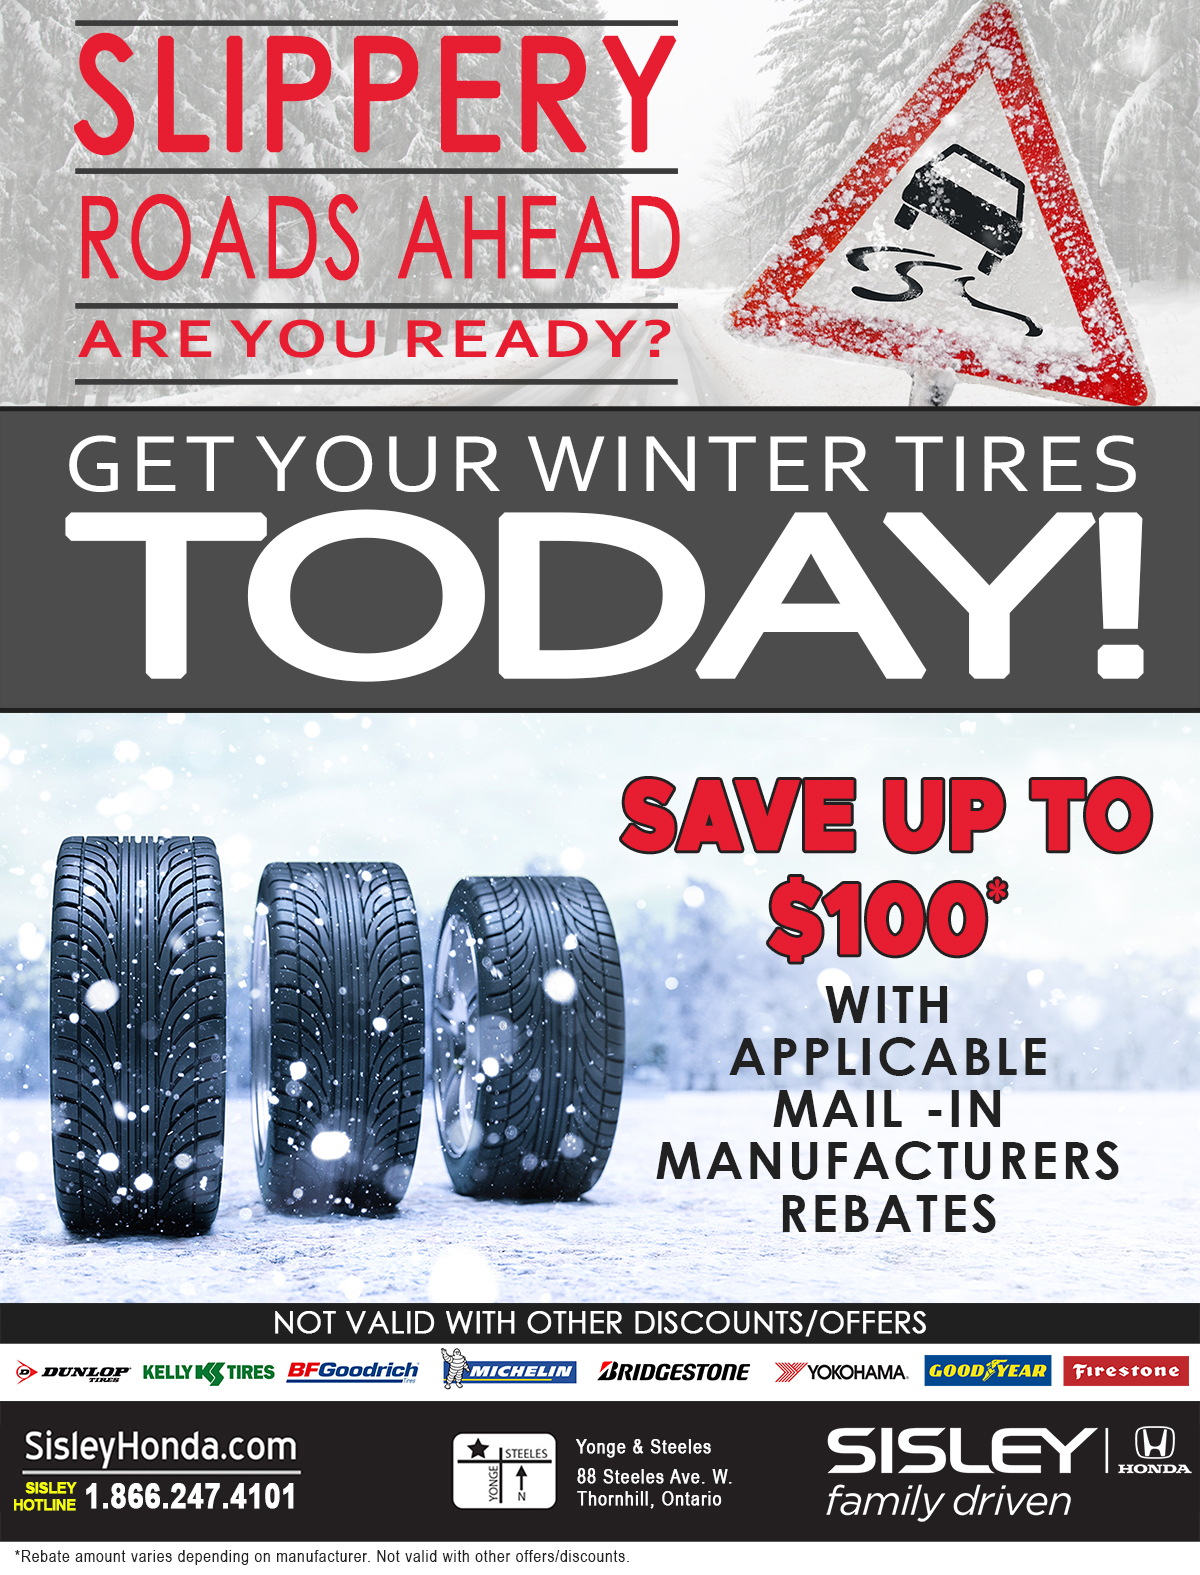 Get Your Winter Tires Today!